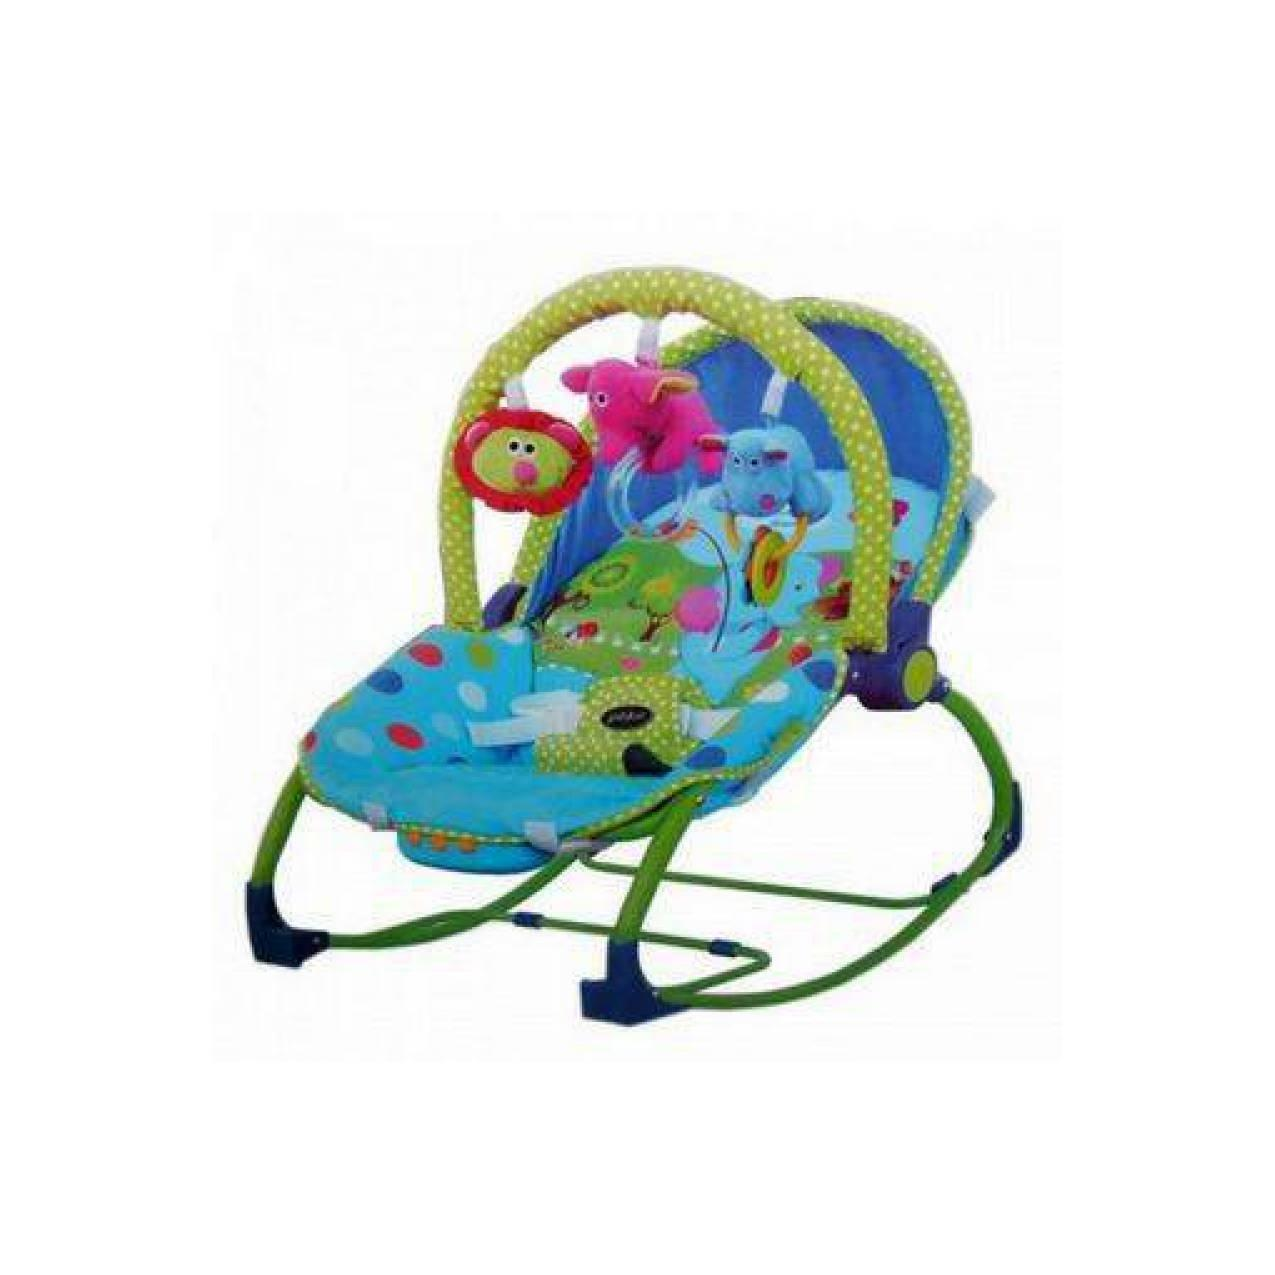 Baby Pliko Rocking Chair Hammock Baby Bouncer 3 Phases